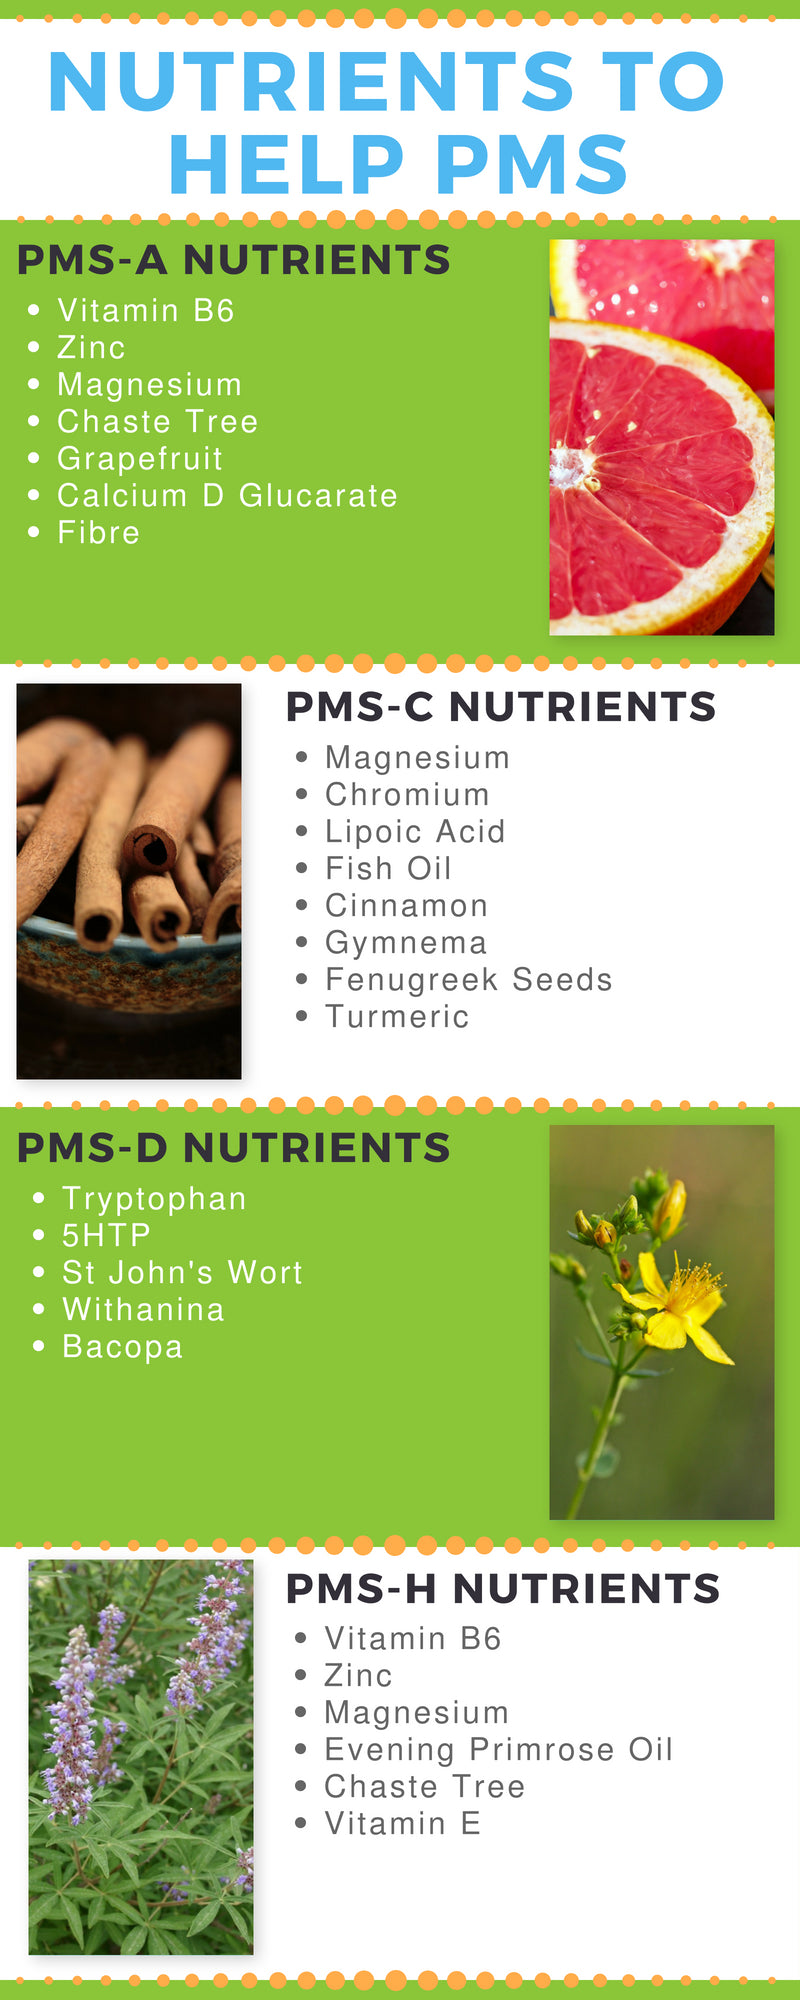 Nutrients to Help PMS